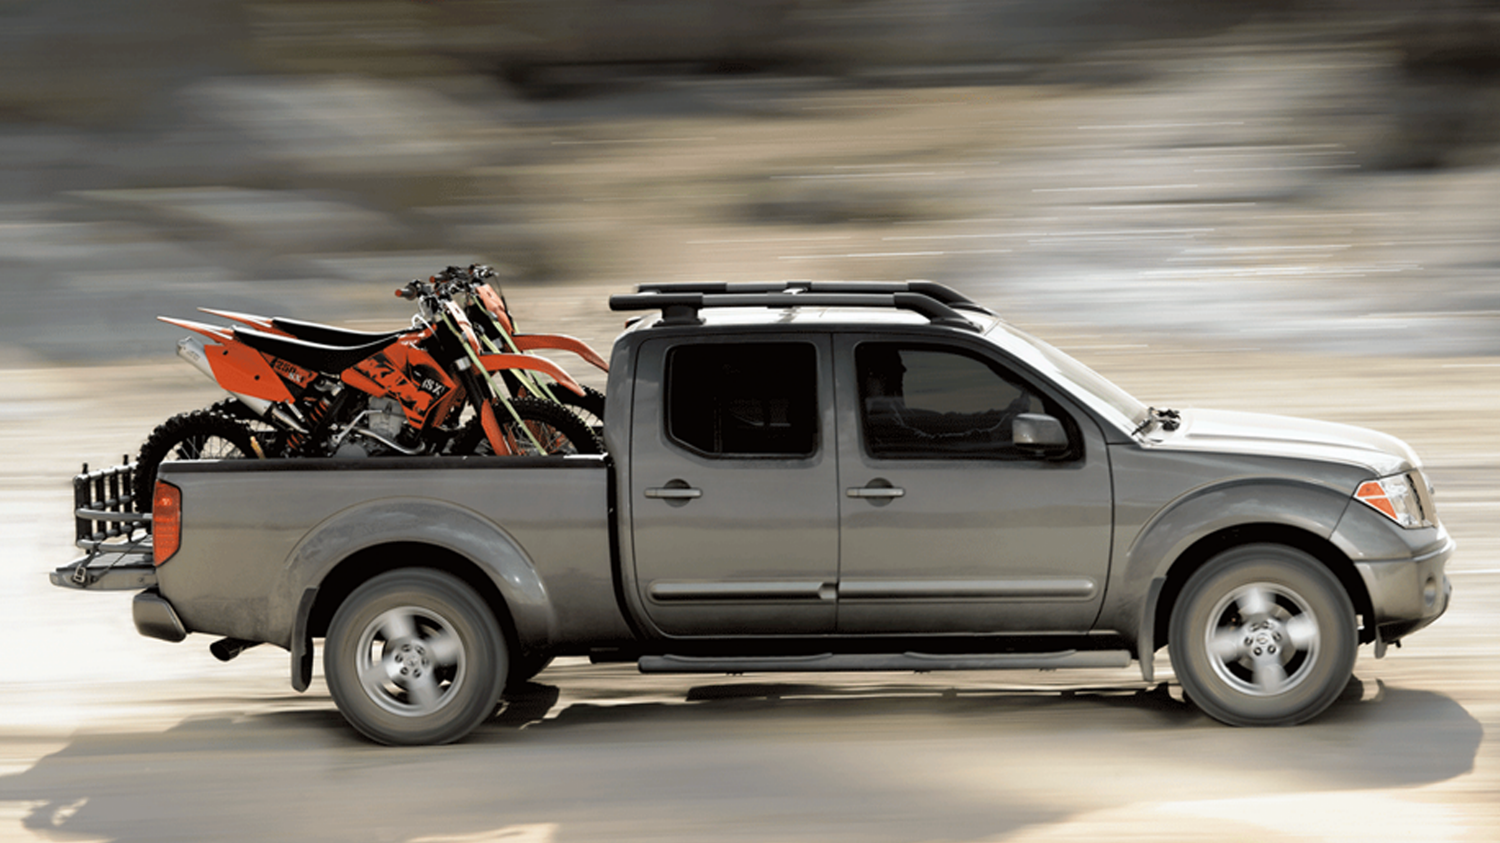 frontier to trucks get nissan reasons getting a expensive manufacturer too